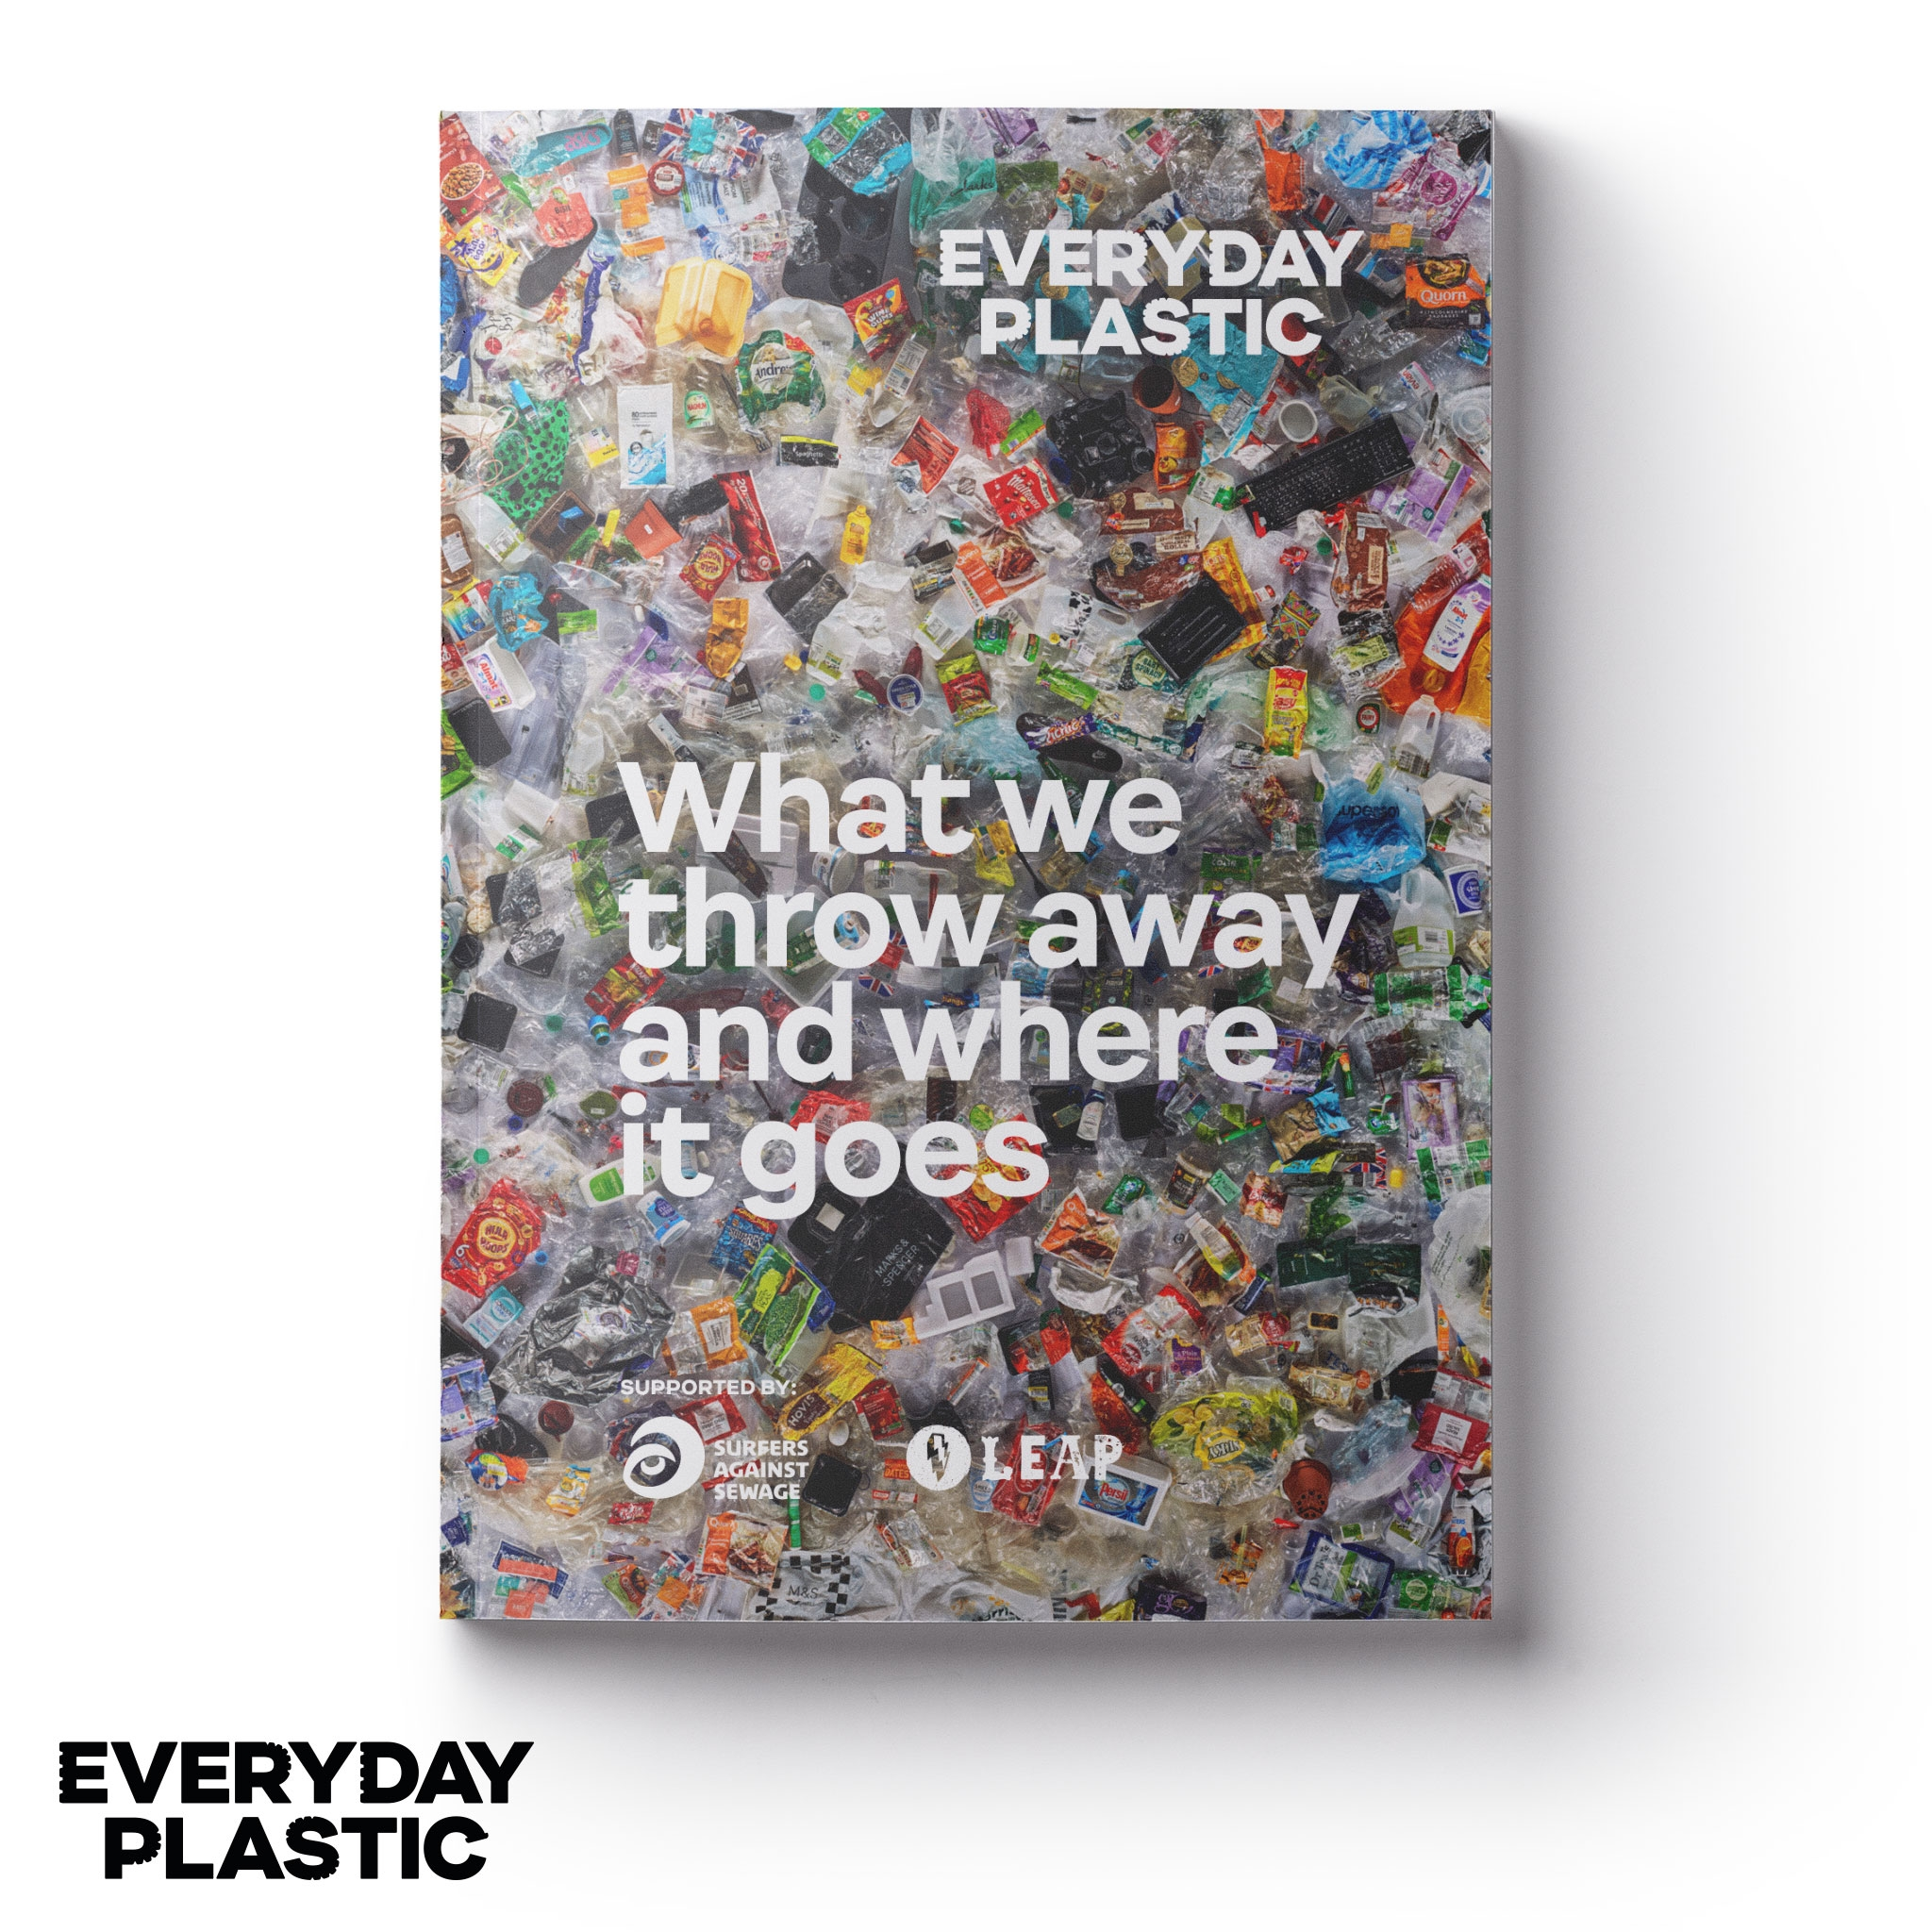 What we throw away and where it goes - This new report endorsed by a major environmental organisation estimates that the UK population throws away over 295 BILLION pieces of plastic every year.In a unique personal experiment, Daniel Webb decided to store all the plastic waste he threw in the bin for 12 months. Shortly after moving to Margate on the Kent coast in 2016, he quickly learned that he was not provided with a recycling service at his flat.Motivated by plastic pollution and wanting to dig deeper into murky national recycling figures, he launched a personal investigation to understand exactly what he throws away and where it ends up.